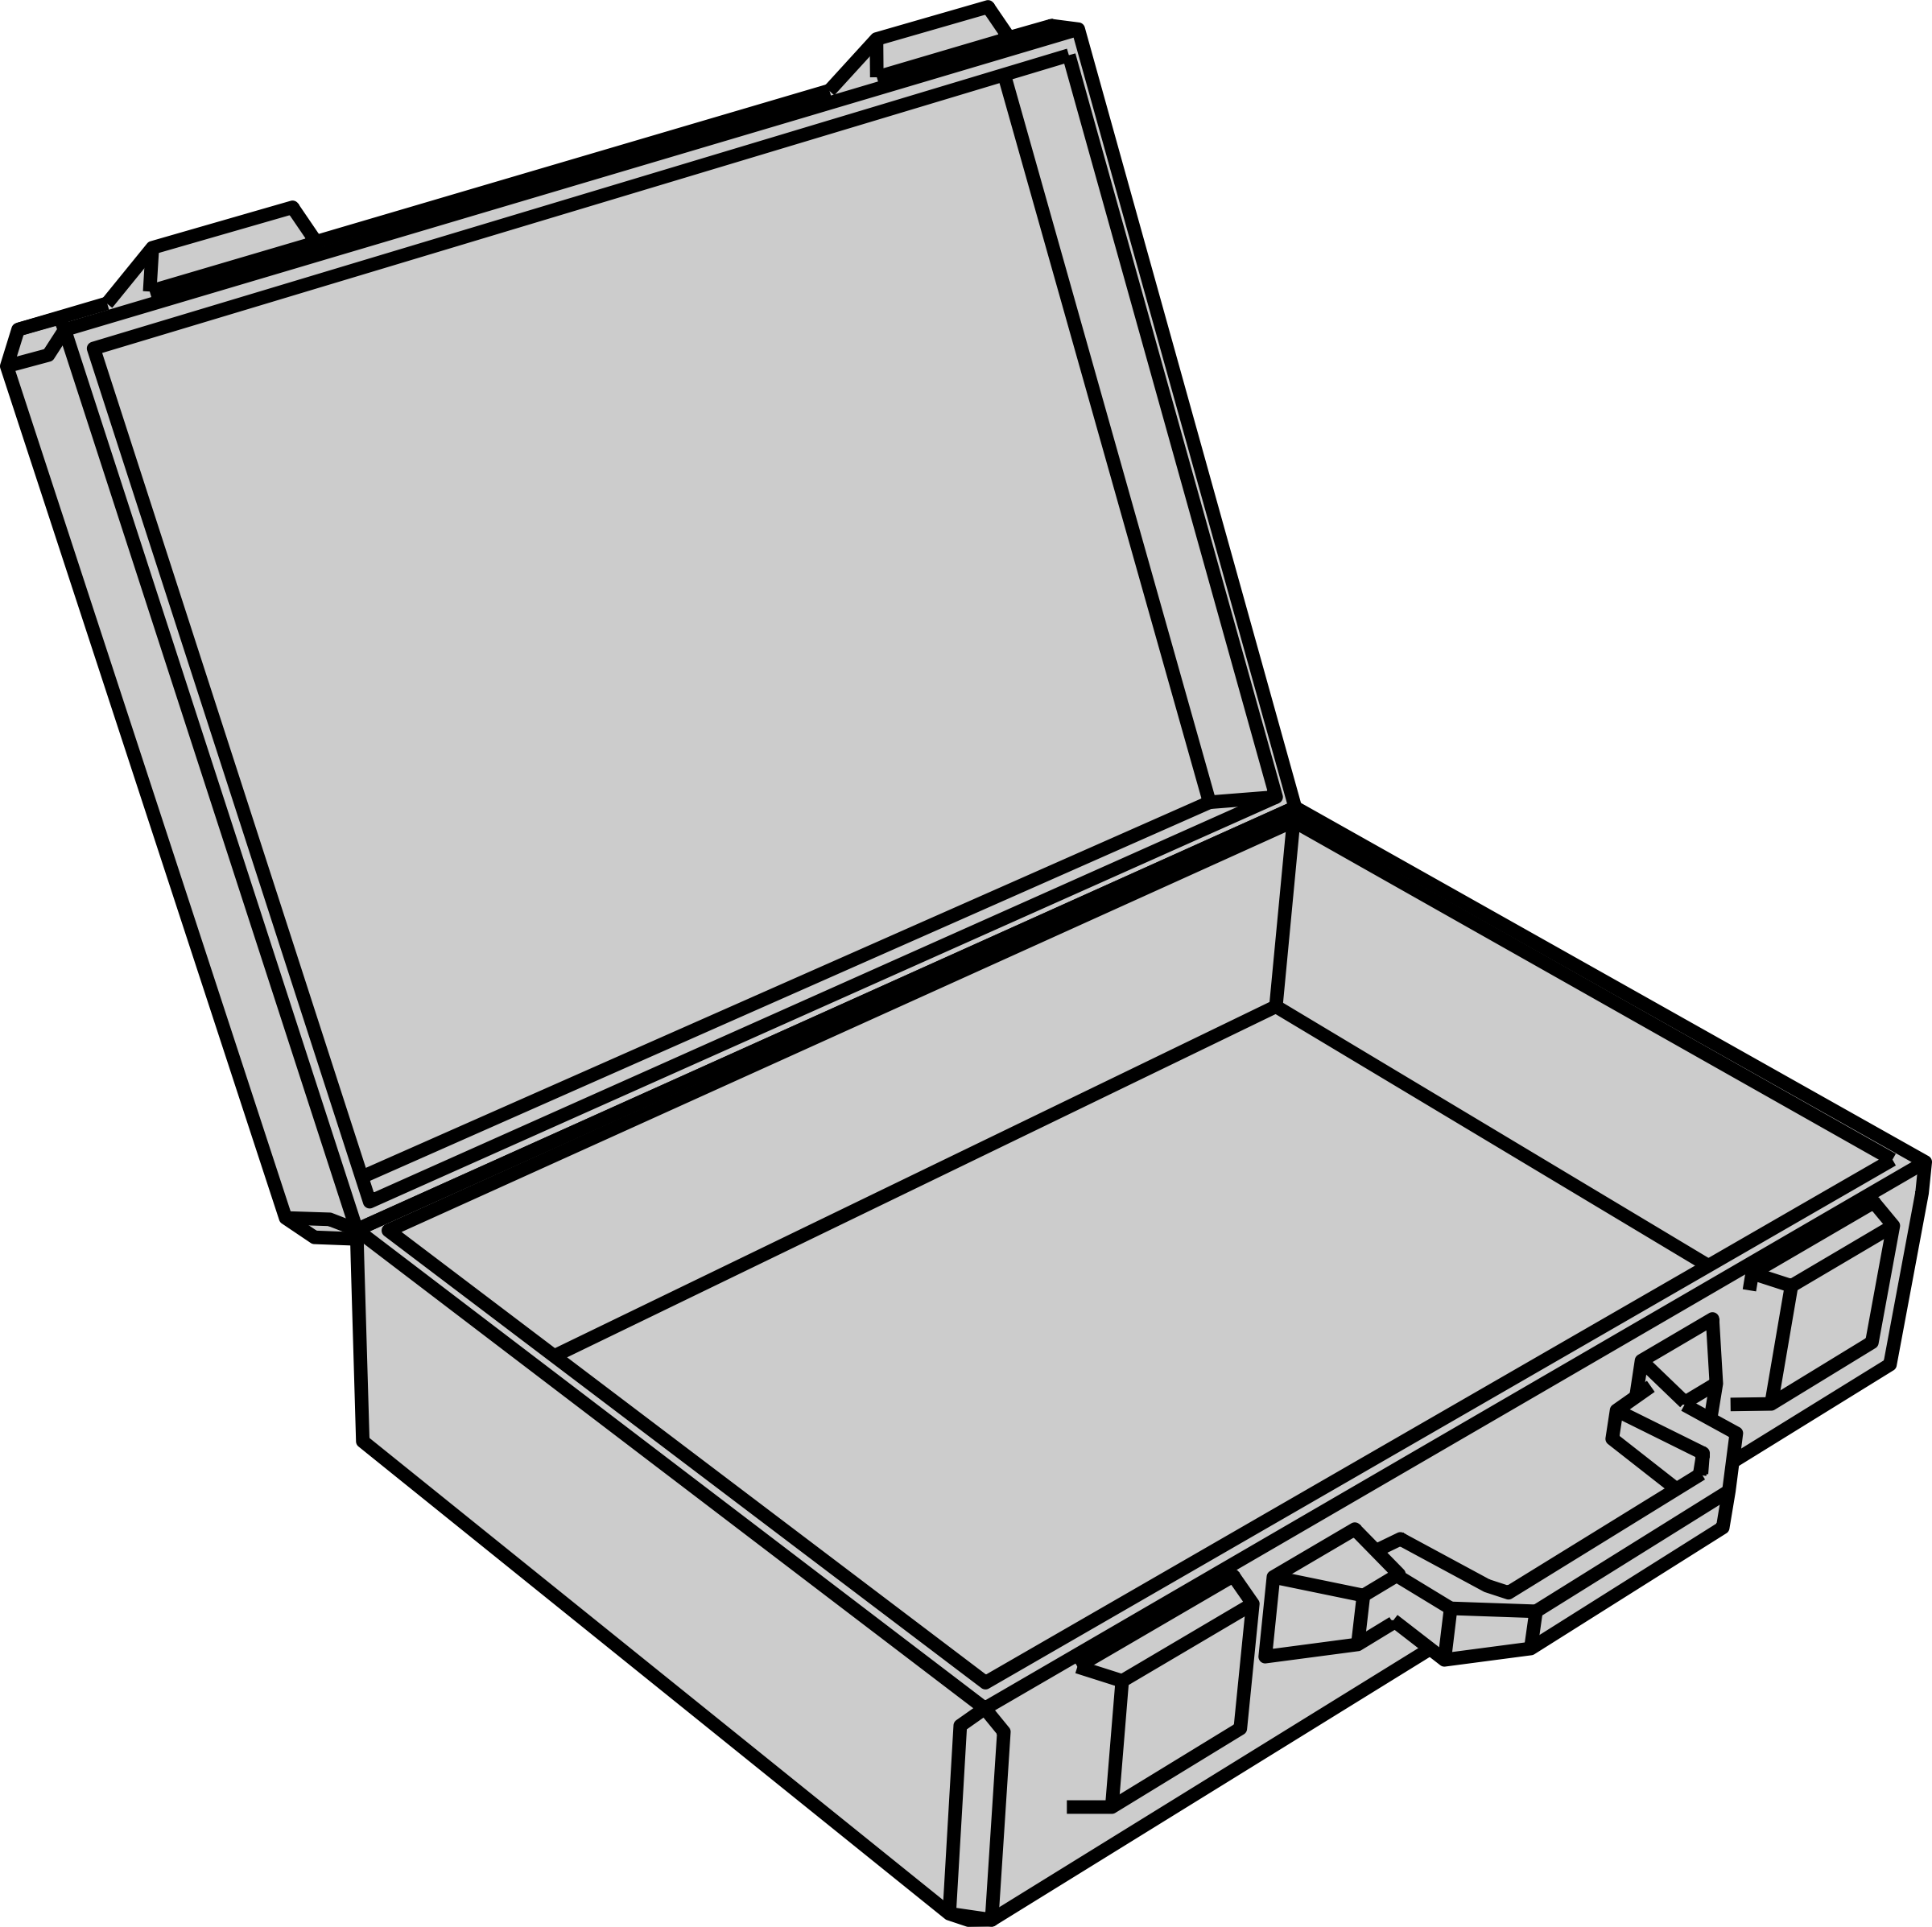 Empty suitcase by gramzon